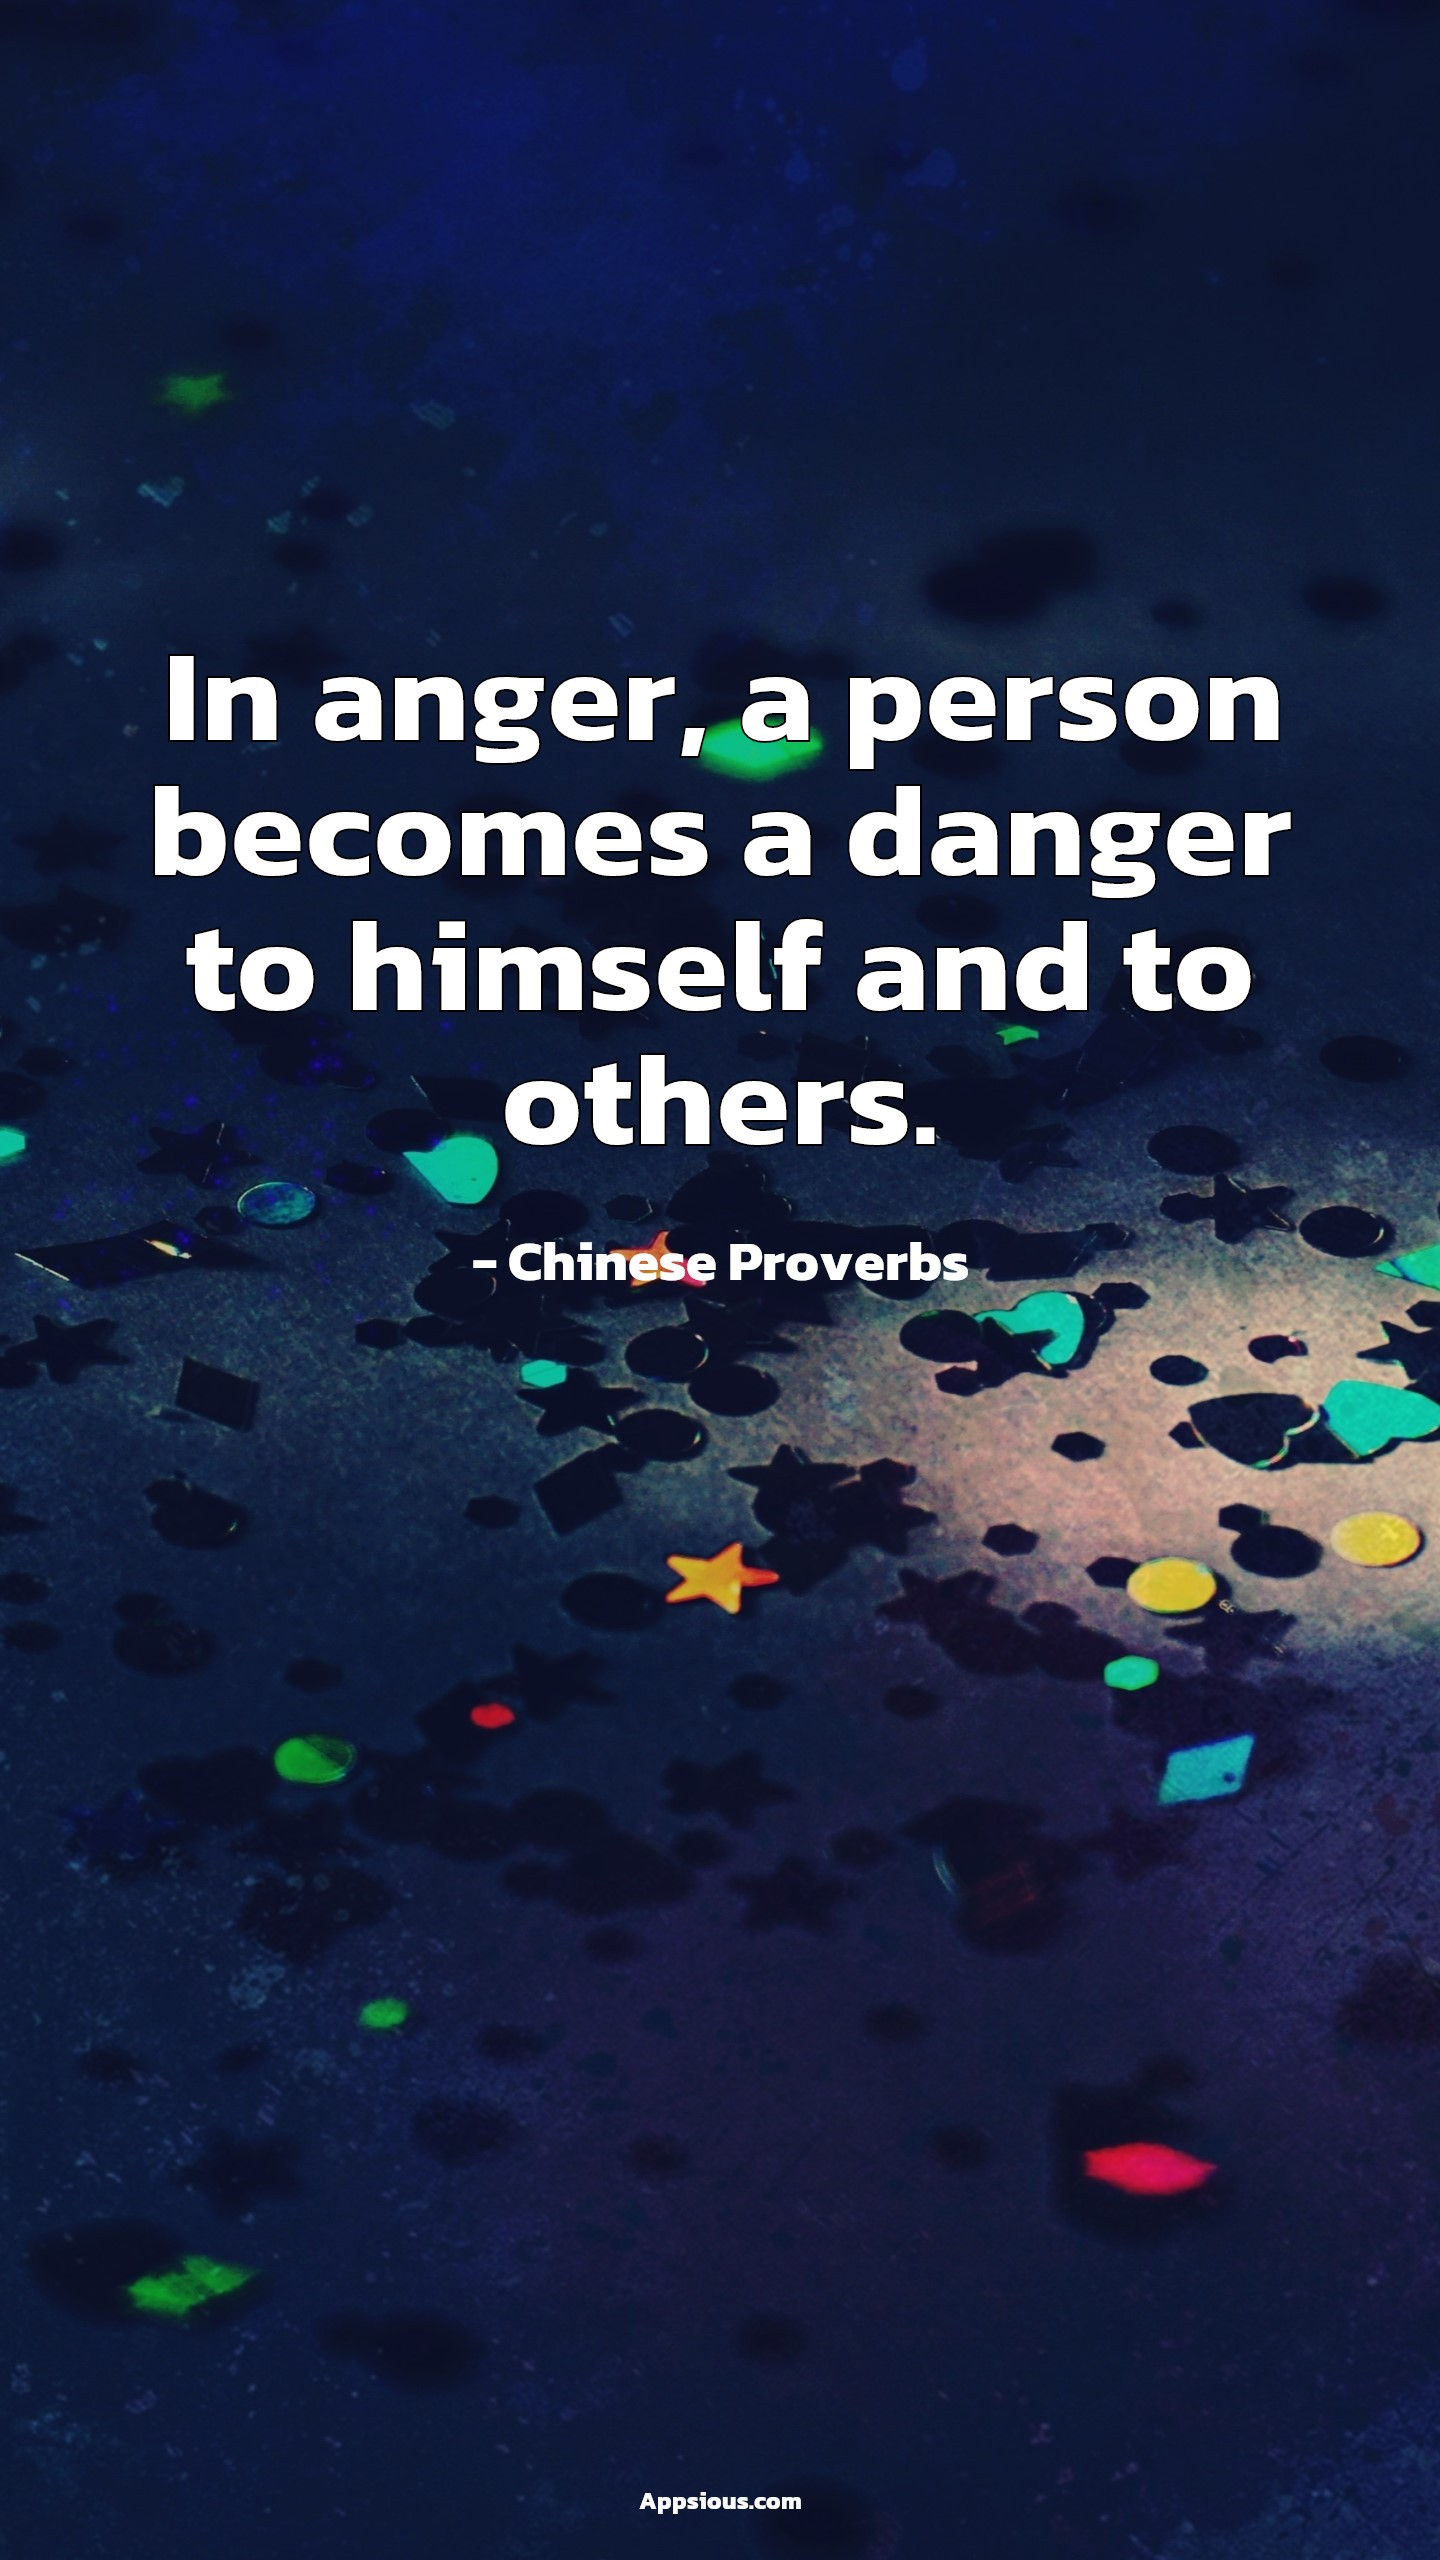 In anger, a person becomes a danger to himself and to others.